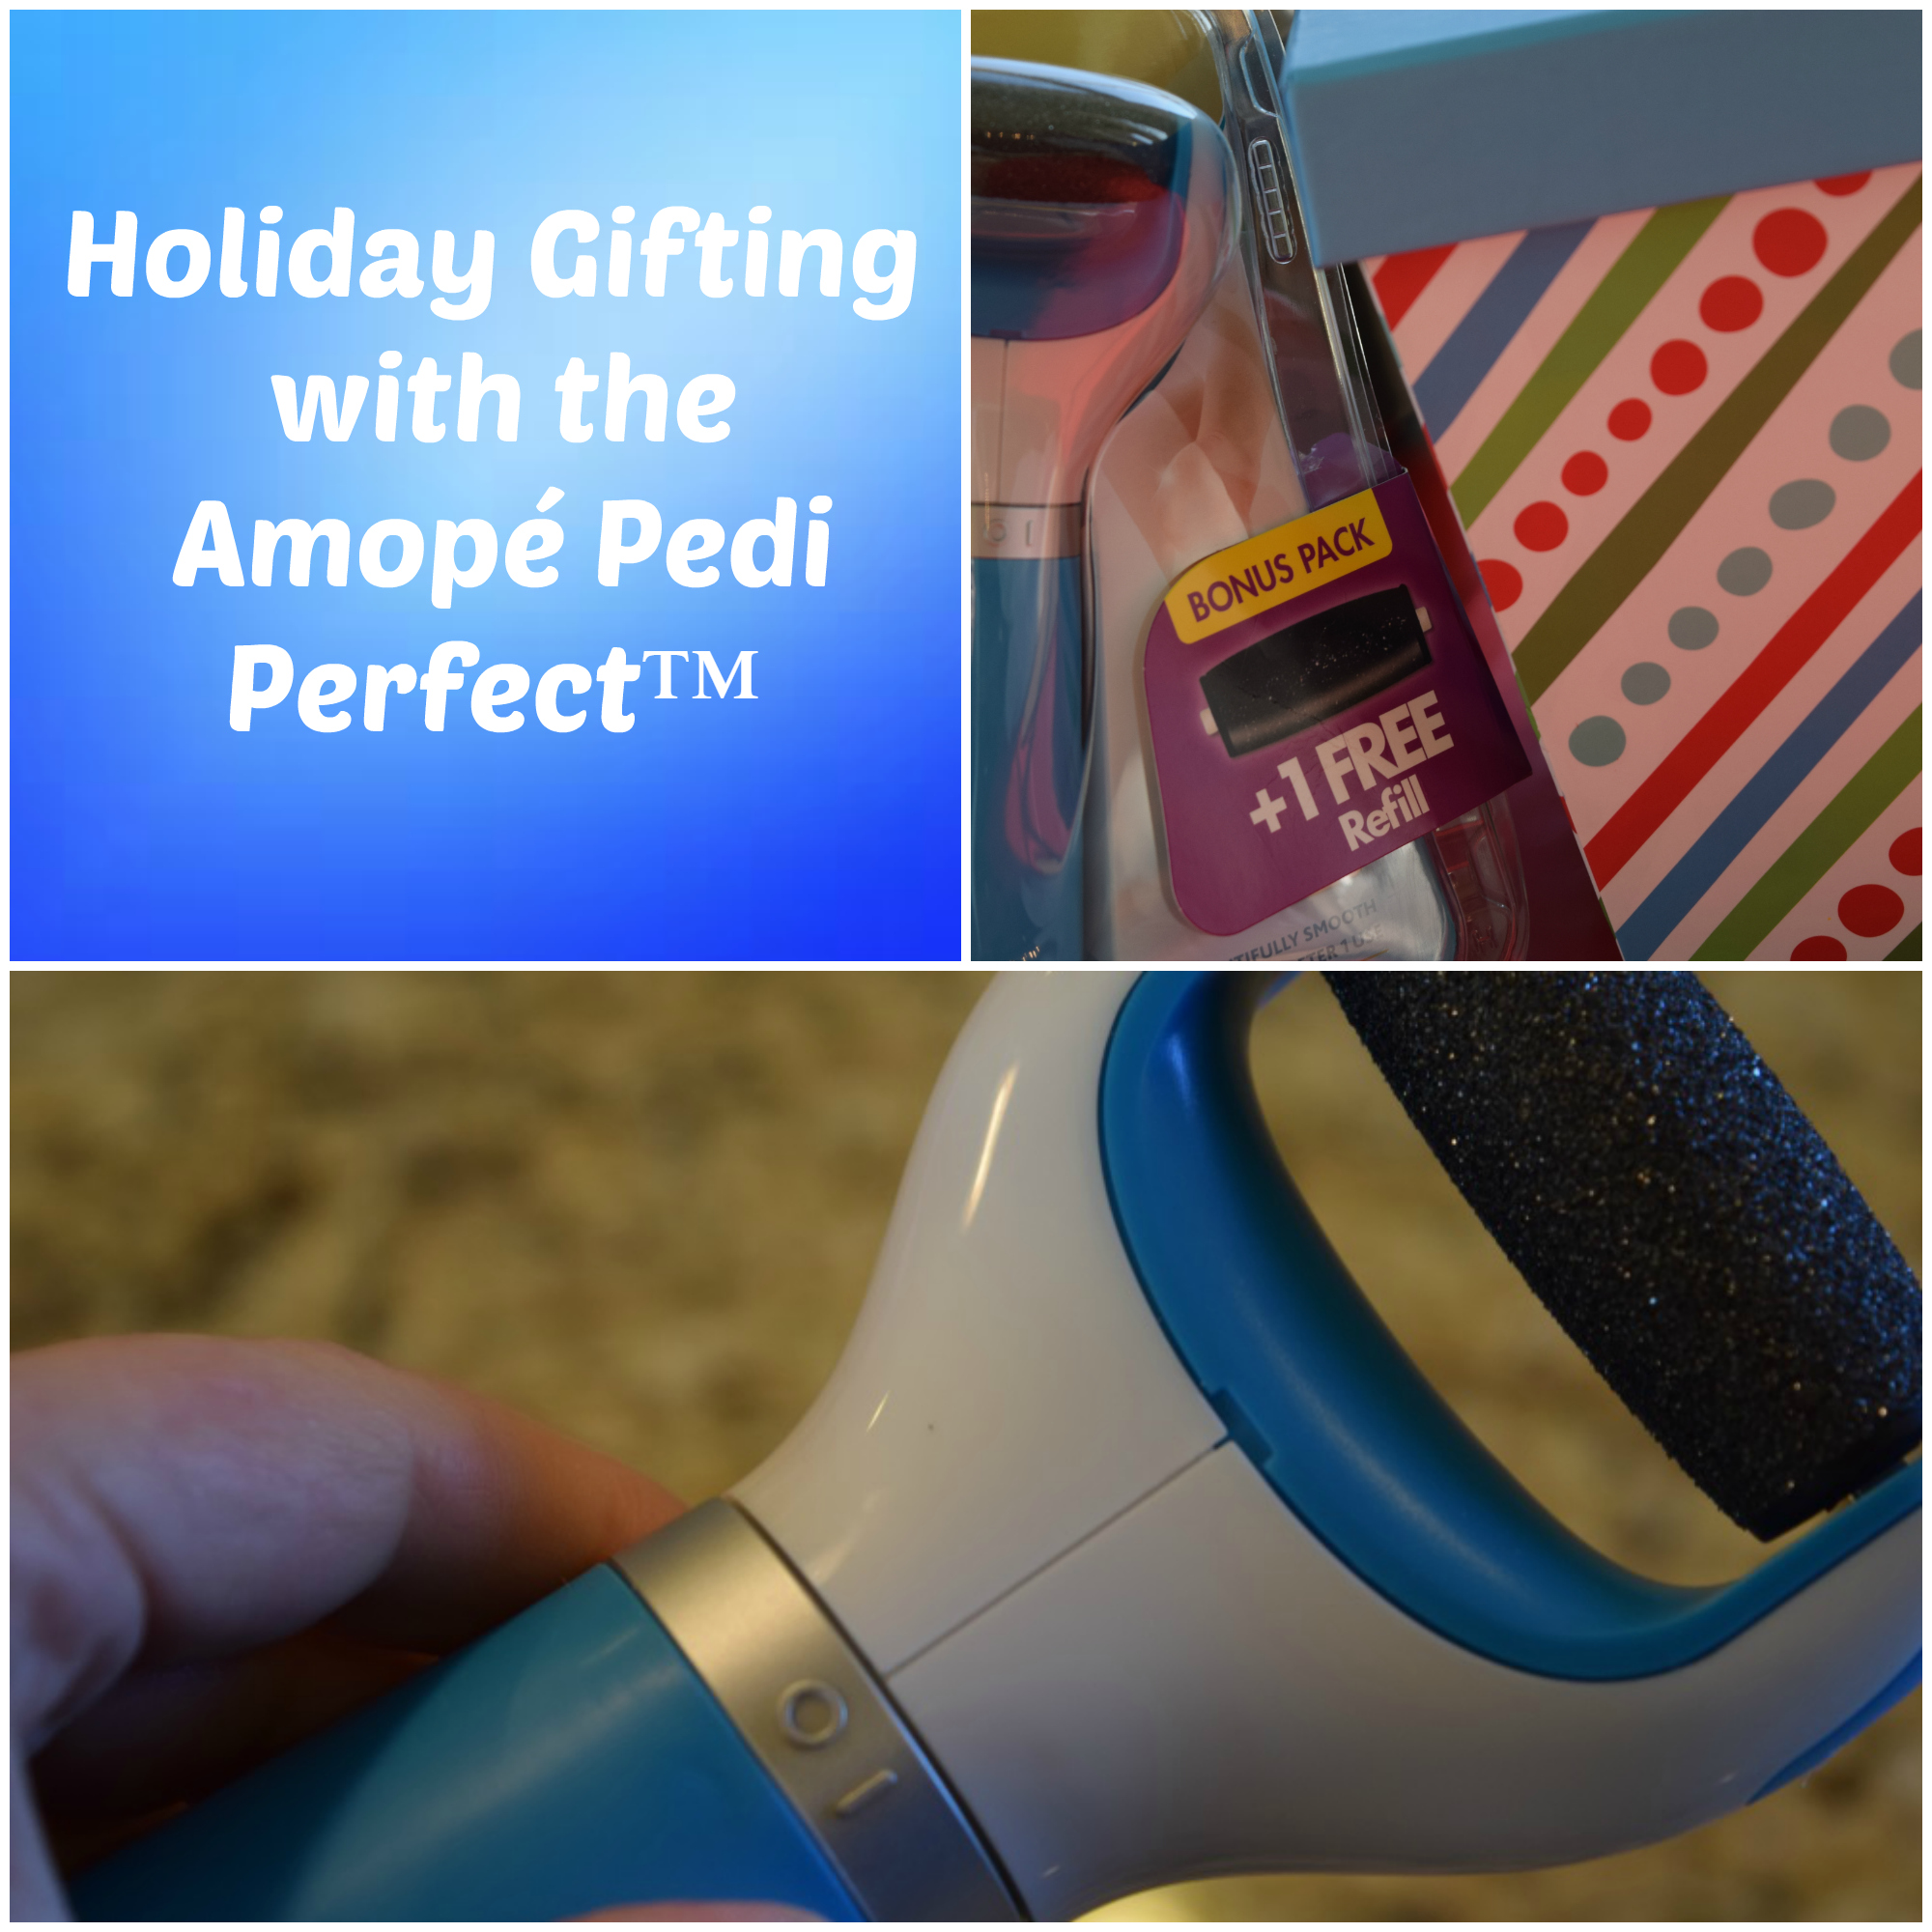 Amope holiday gifting pedi perfect